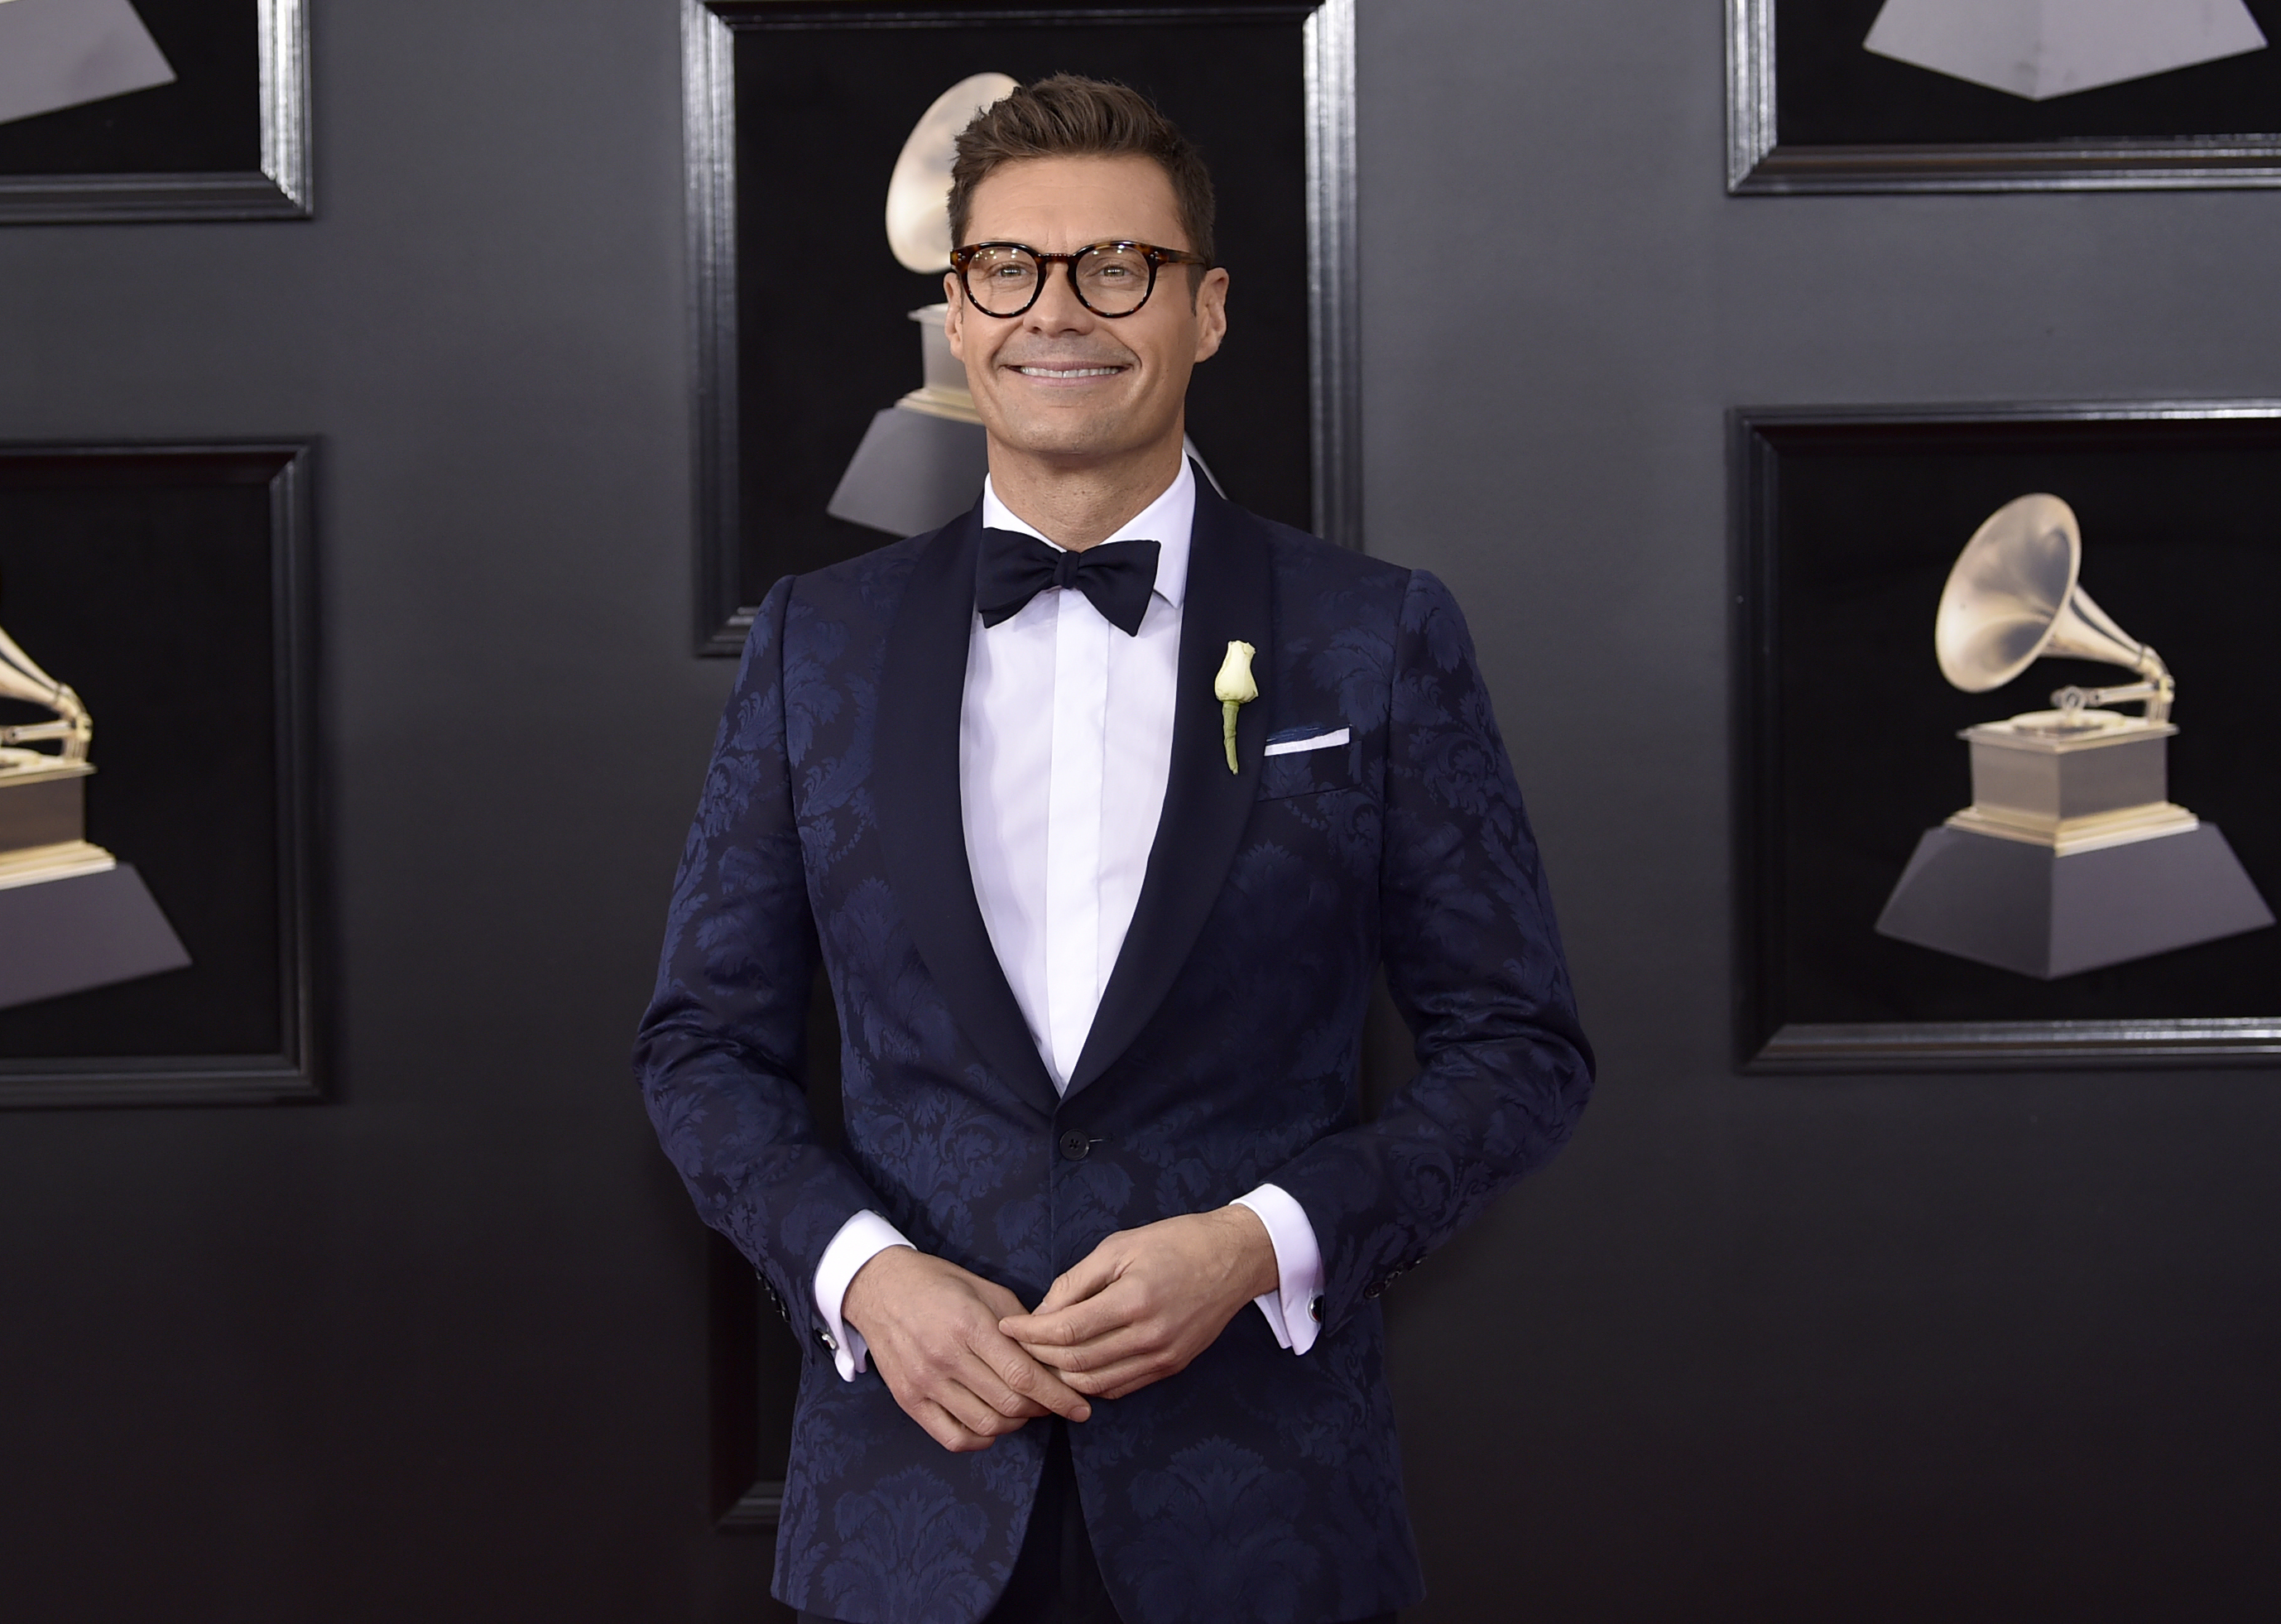 <div class='meta'><div class='origin-logo' data-origin='AP'></div><span class='caption-text' data-credit='Evan Agostini/Invision/AP'>Ryan Seacrest arrives at the 60th annual Grammy Awards at Madison Square Garden on Sunday, Jan. 28, 2018, in New York.</span></div>